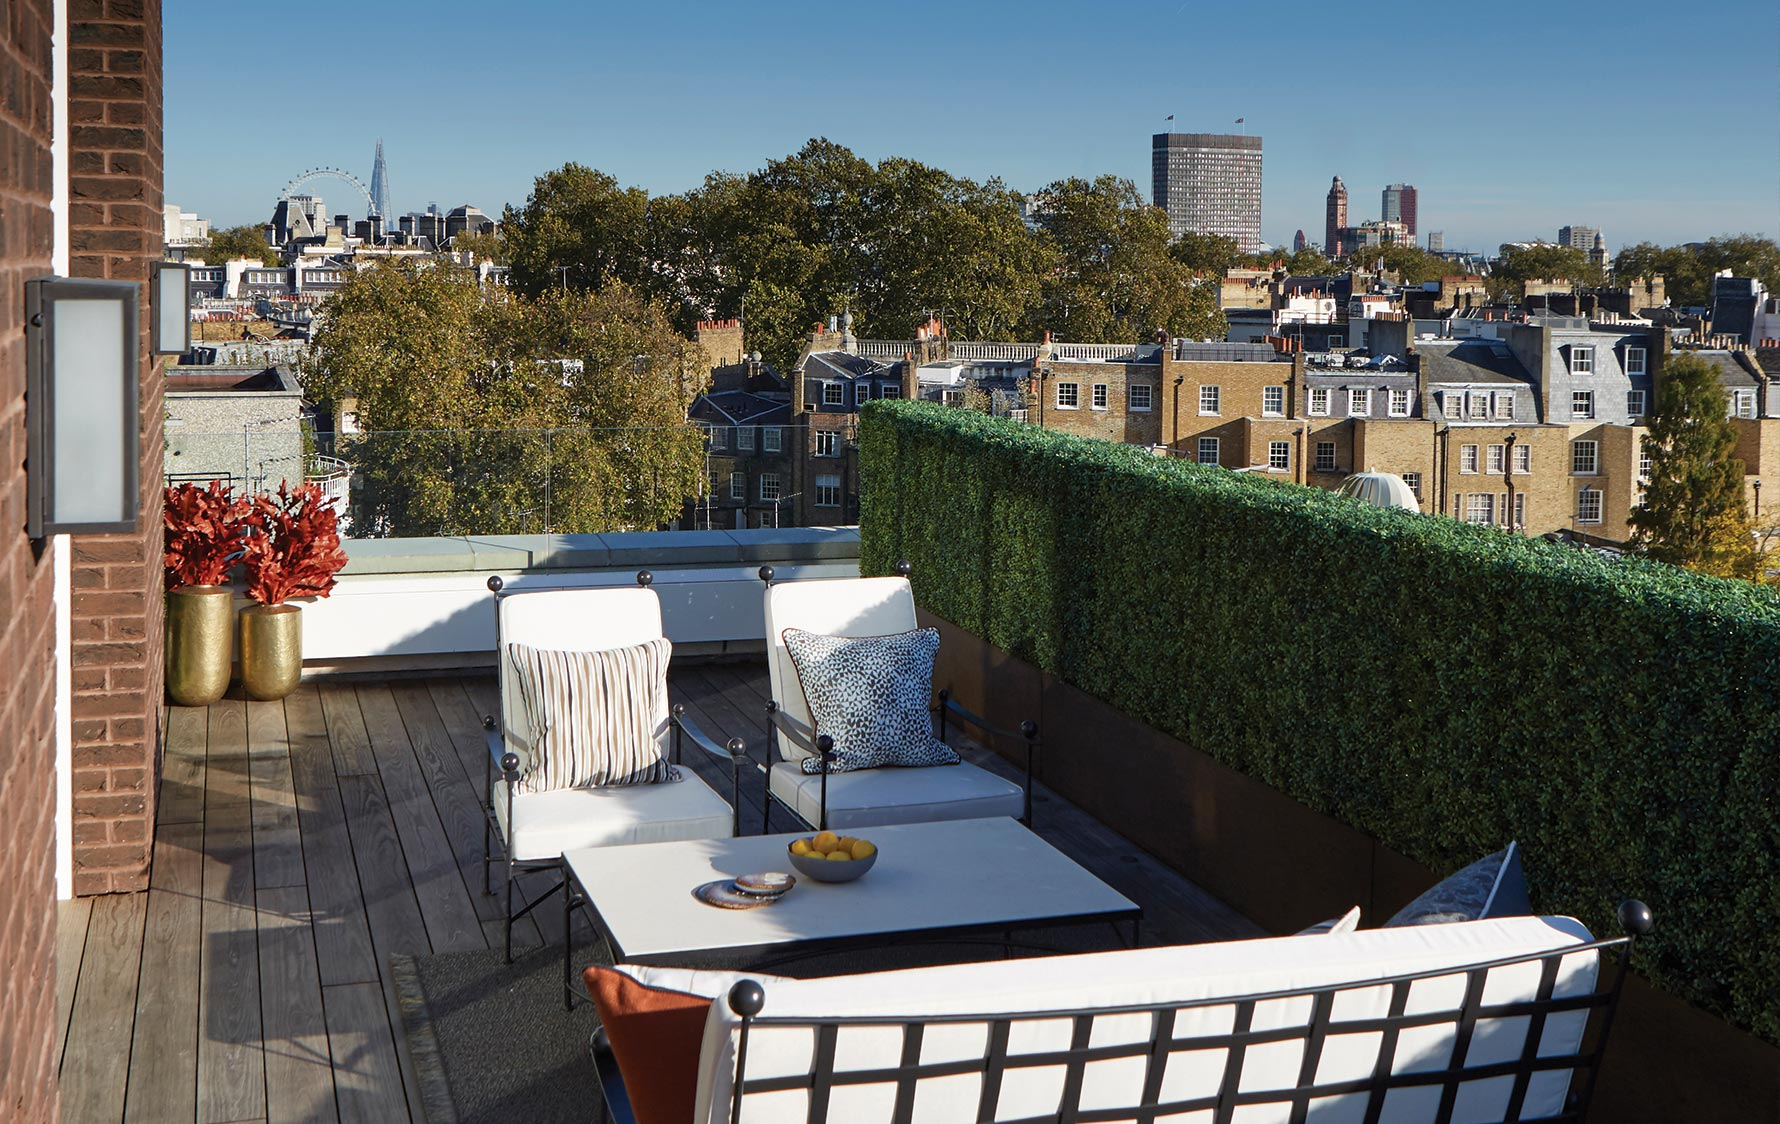 London Rooftop Terrace, Outdoor Space Ideas |Helen Green | Read more in The Luxurist | LuxDeco.com